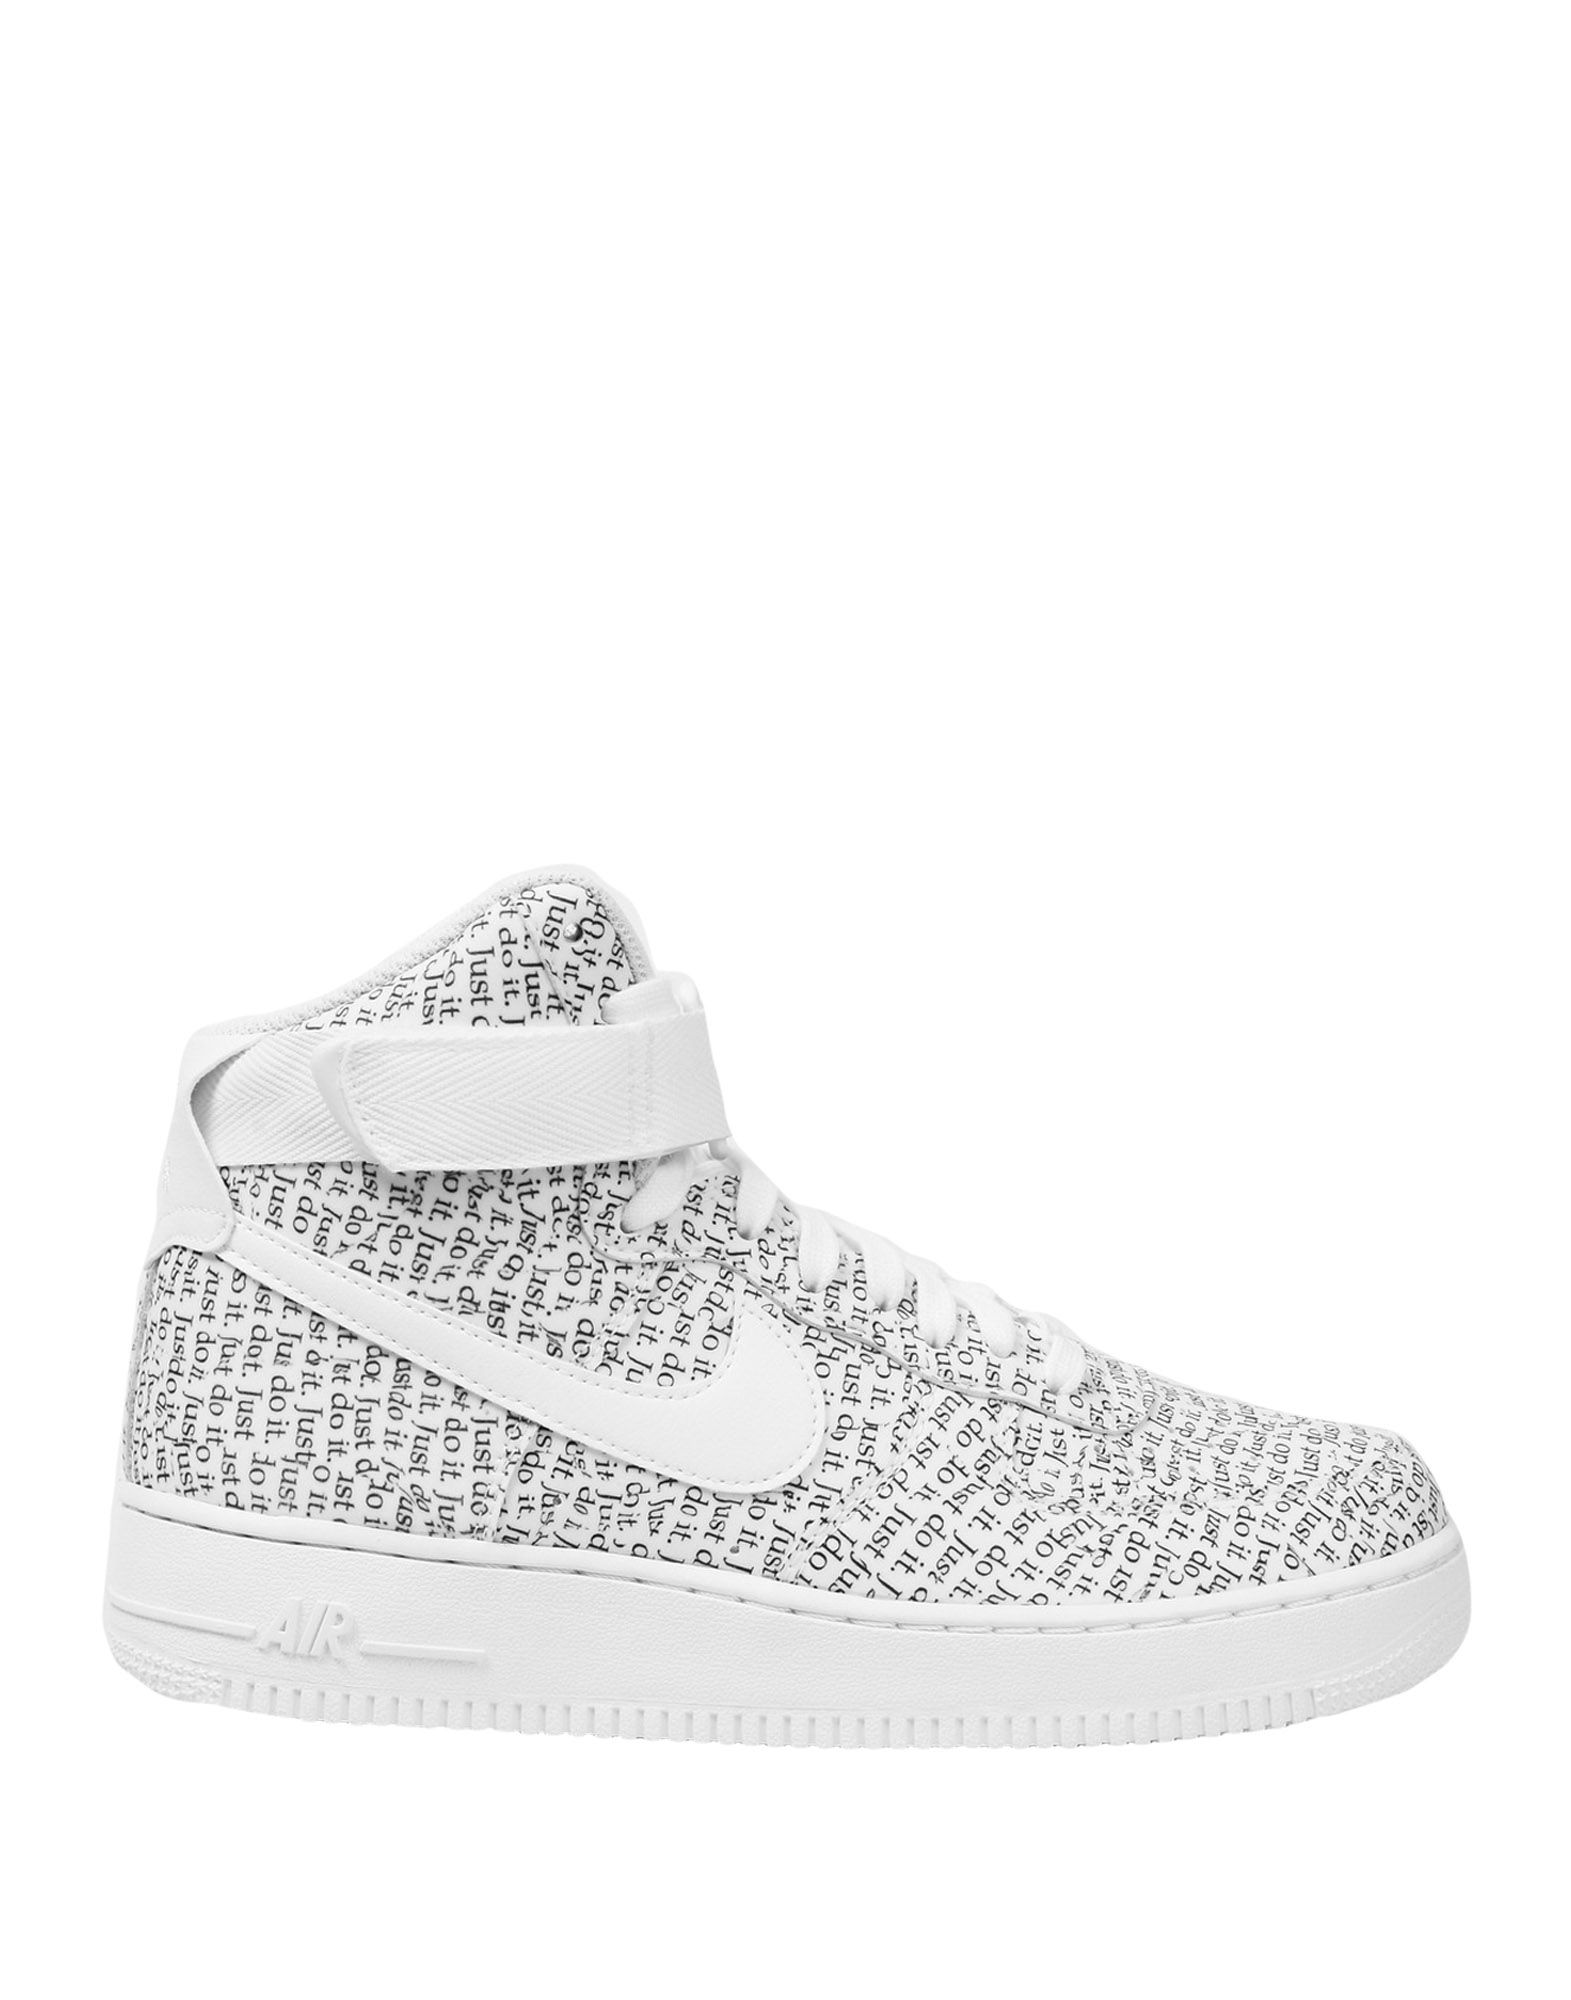 558f4c97d1f Sneakers Nike Nike Air Force - Γυναίκα - Sneakers Nike στο YOOX - 11533884EE